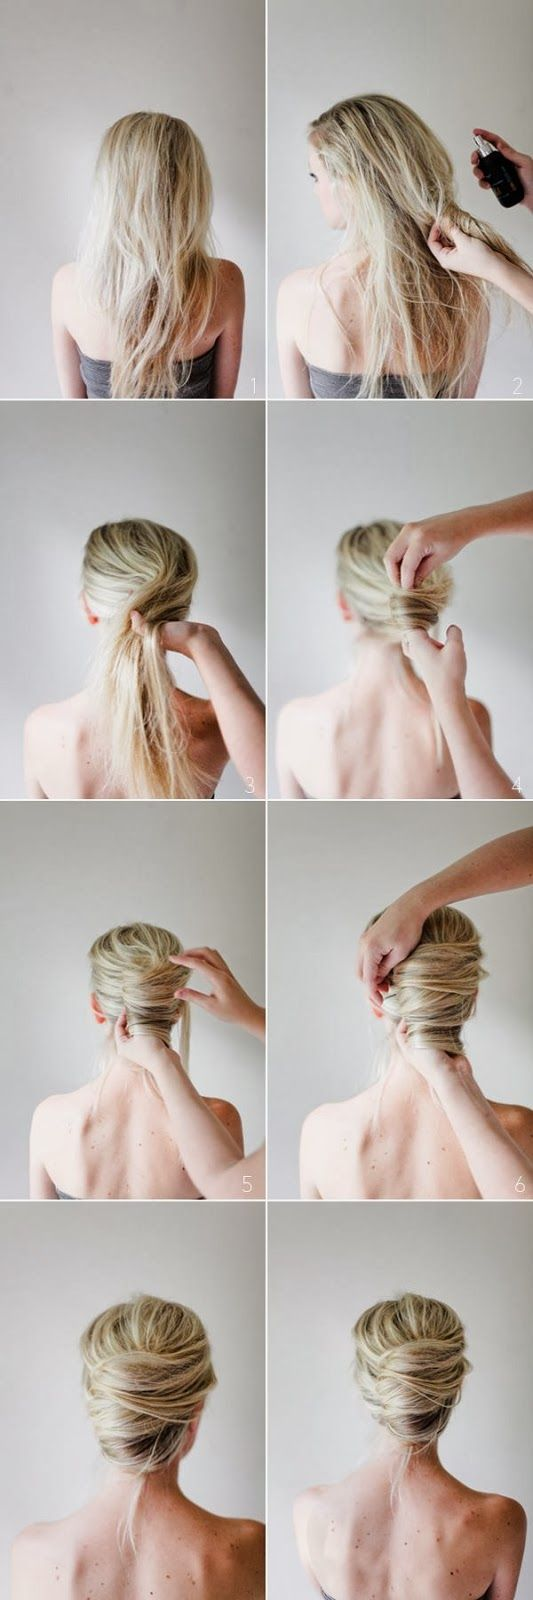 Messy French Twist Tutorial This seems difficult